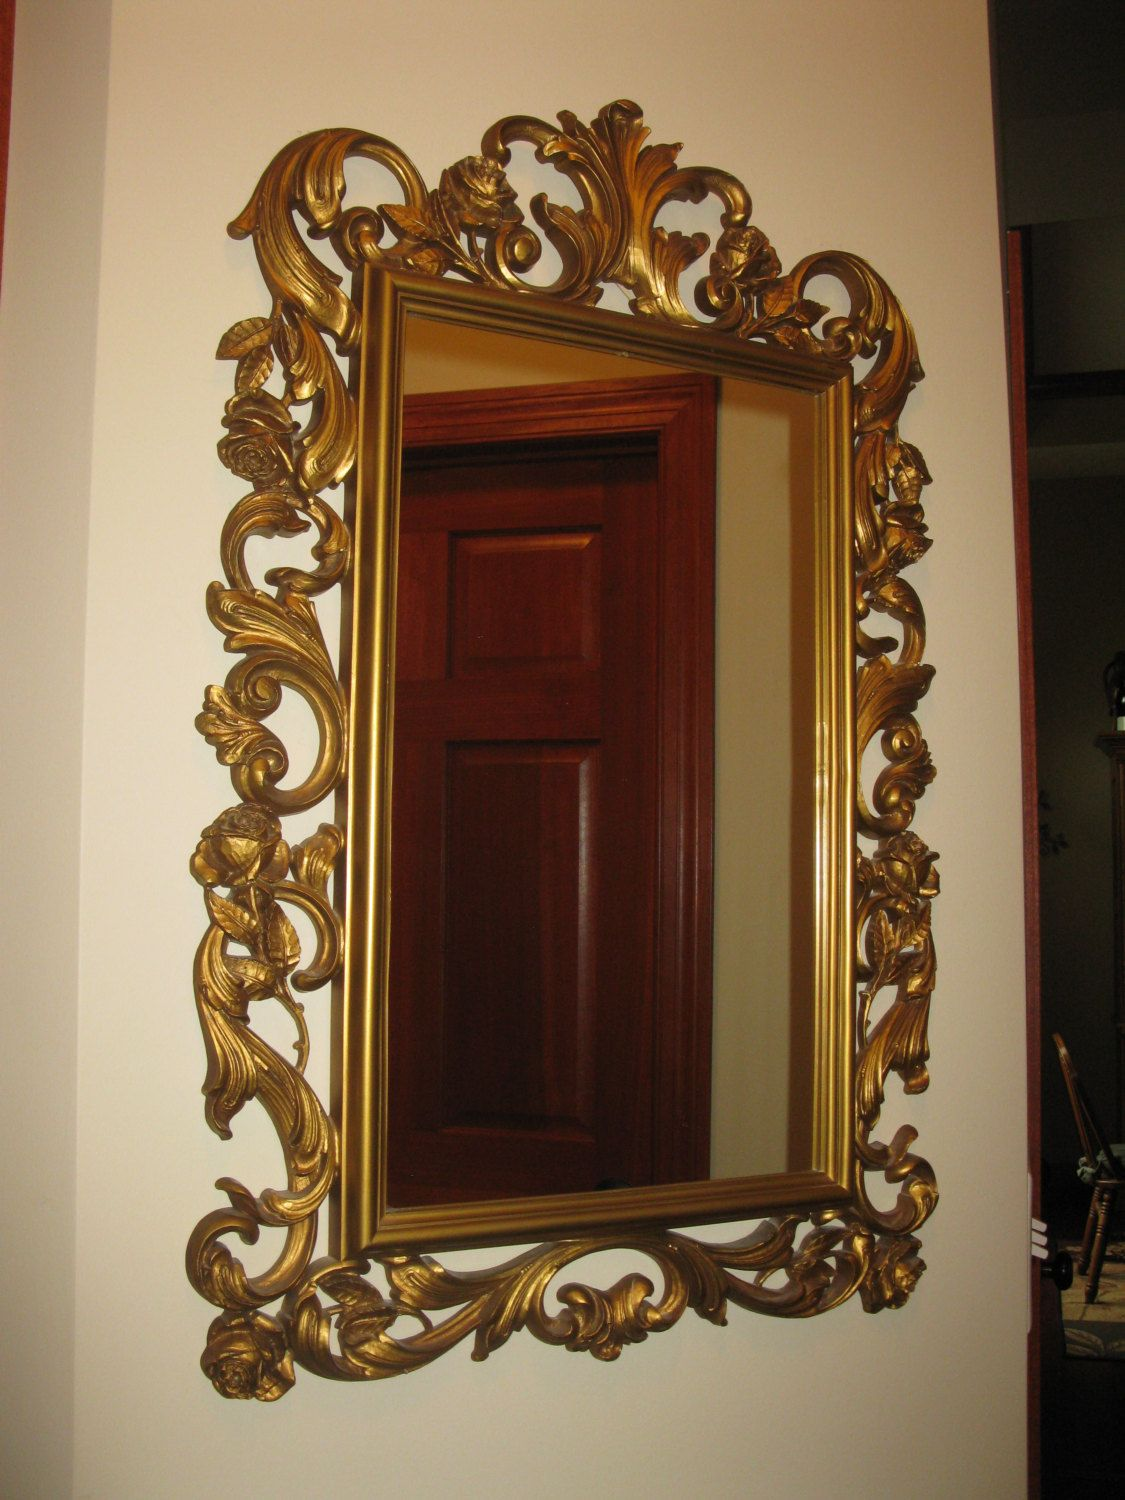 Ornate Homco Wall Mirror Large Gold Plastic Resin Framed 29 1 2 Quot X 19 1 2 Quot 1977 Dart Inc Hollywood Re Mirror Wall Mirror Rectangular Mirror [ 1500 x 1125 Pixel ]